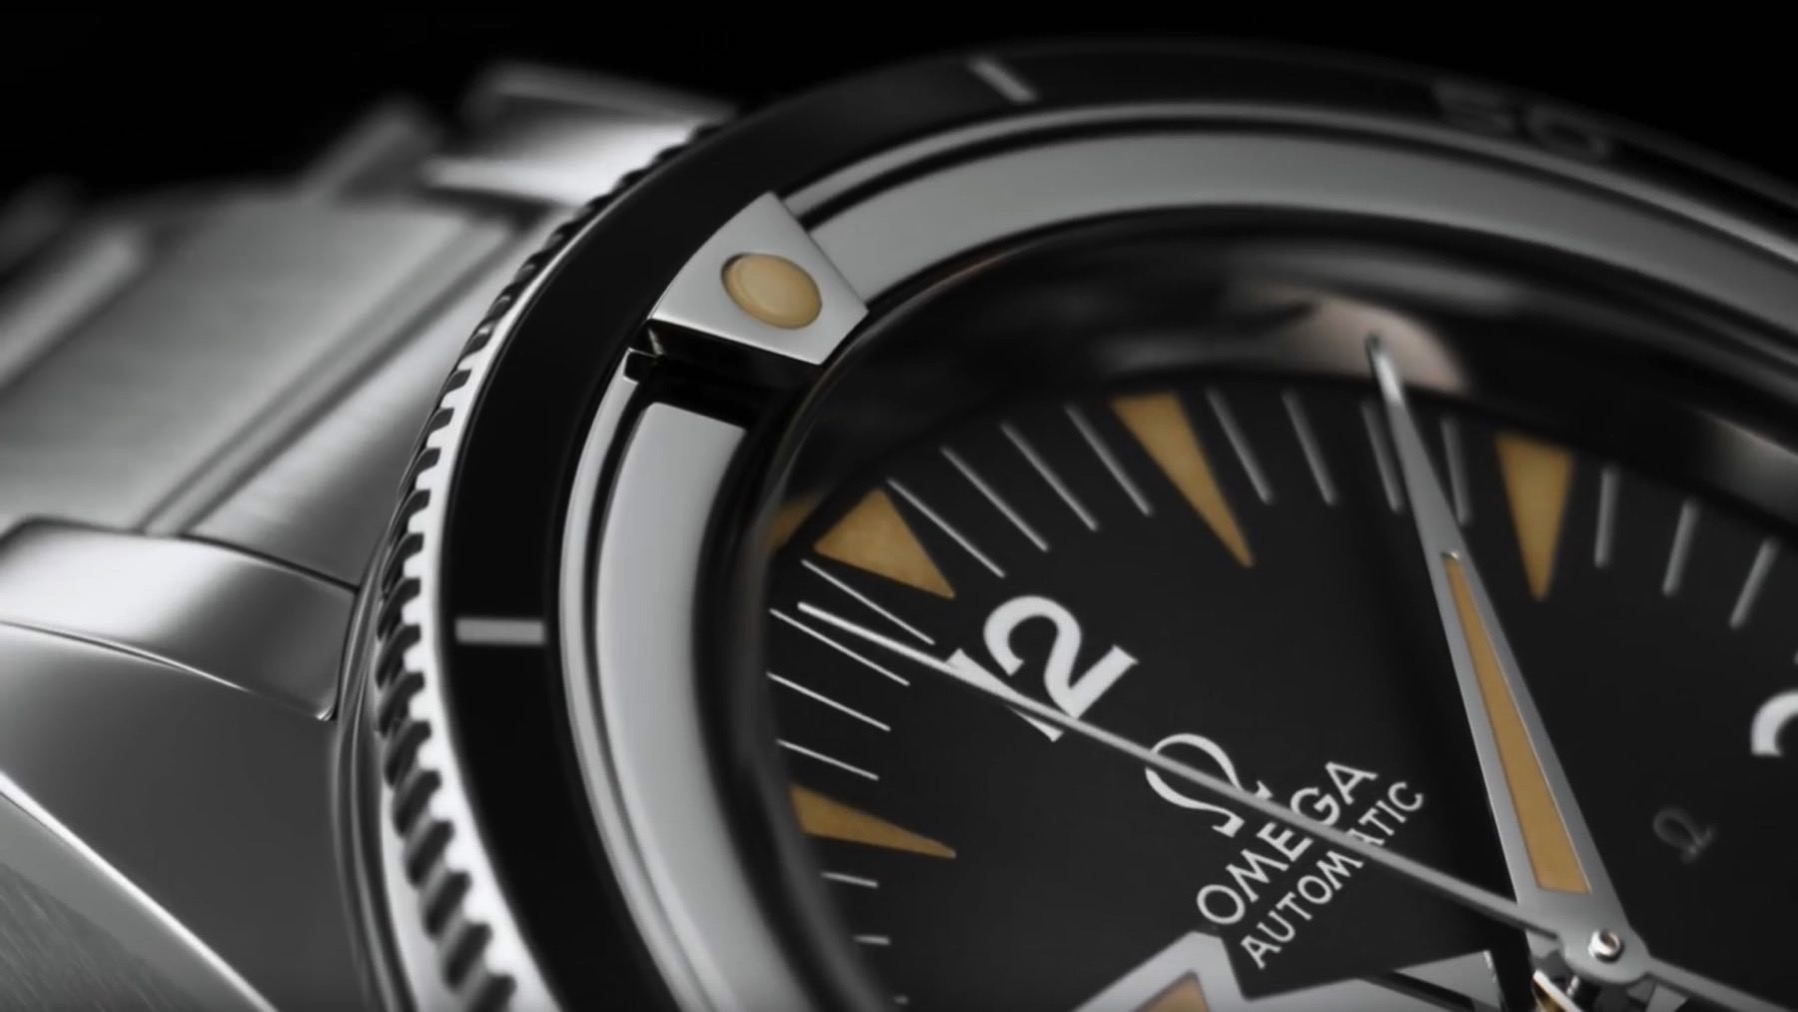 03 OMEGA 1957 Trilogy Limit Edition Seamaster